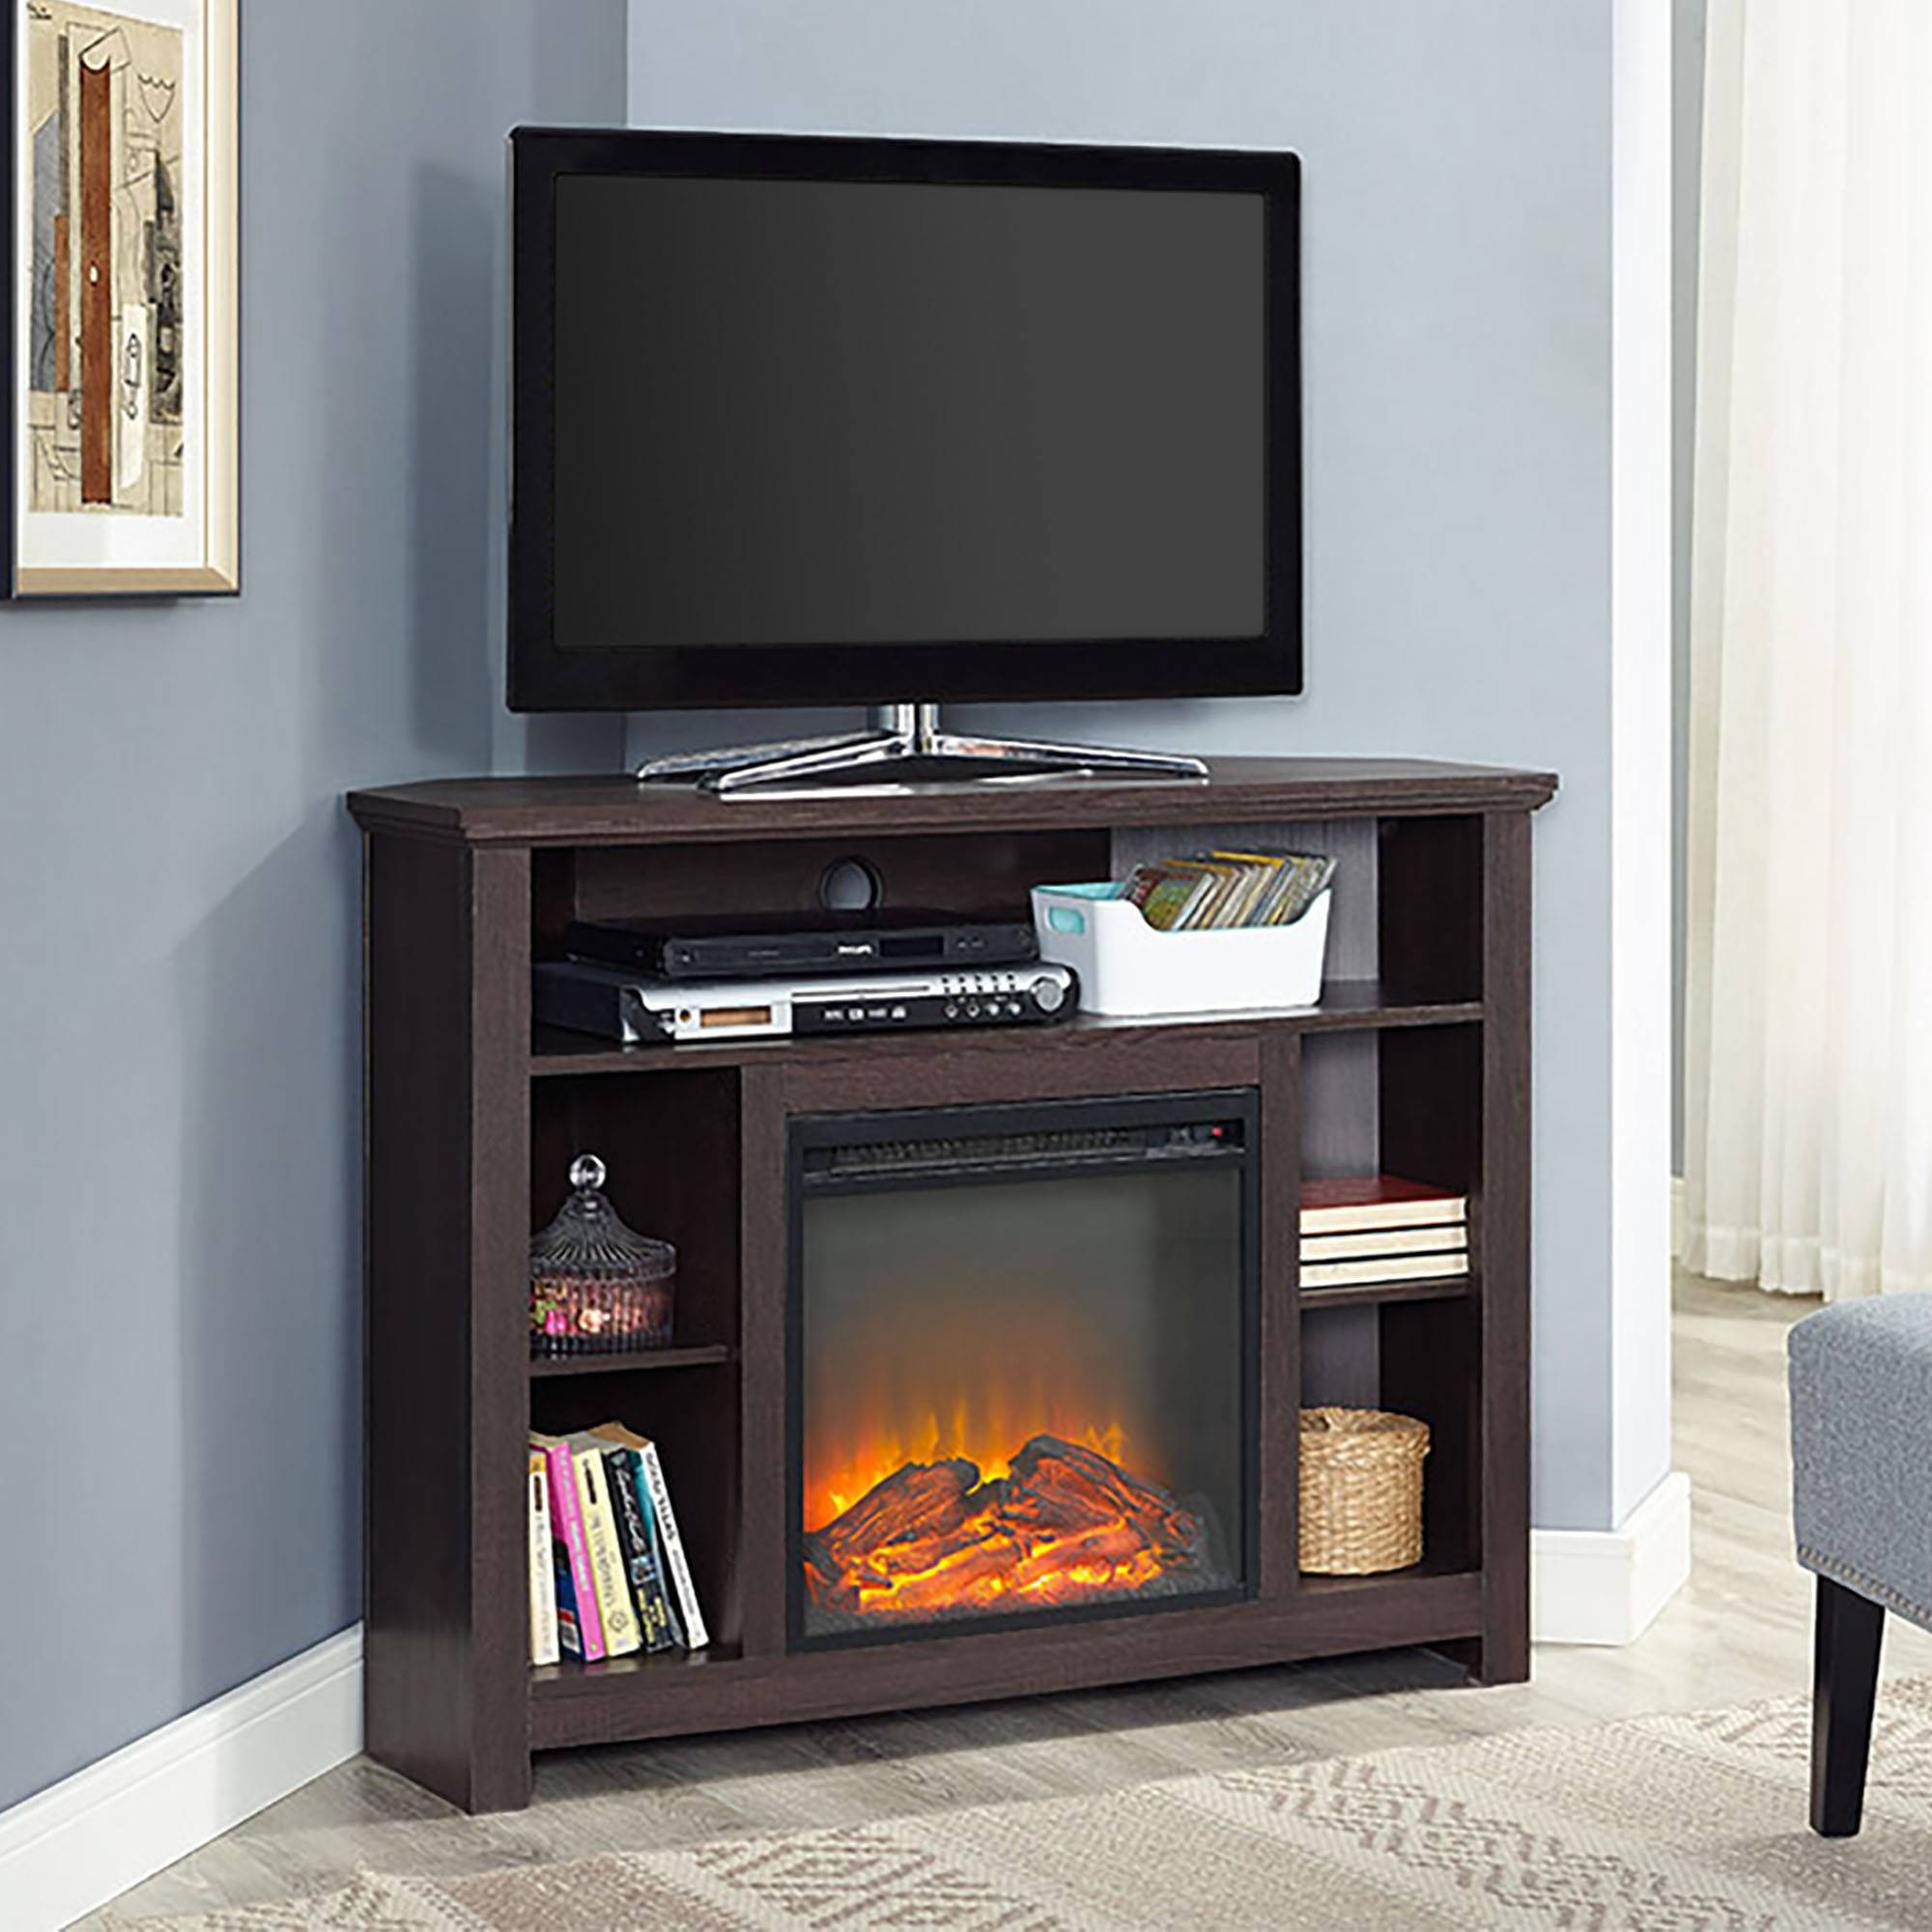 "44"" Wood Corner Tall Fireplace TV Stand for TVs up to 60"" - Espresso ("